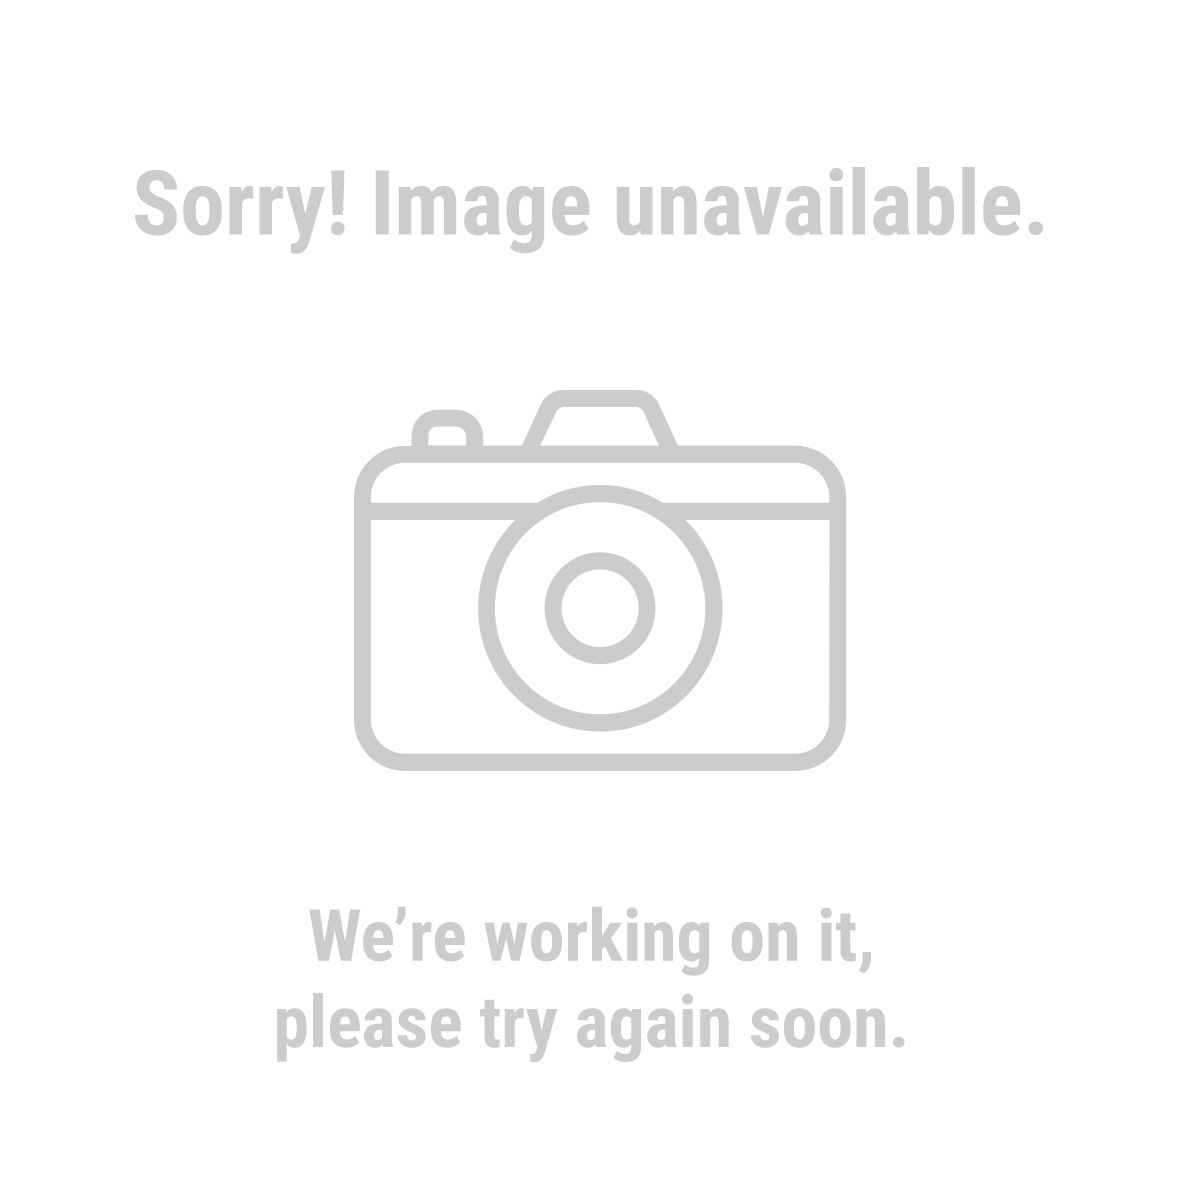 Voyager 96533 Magnetic Wrist Band